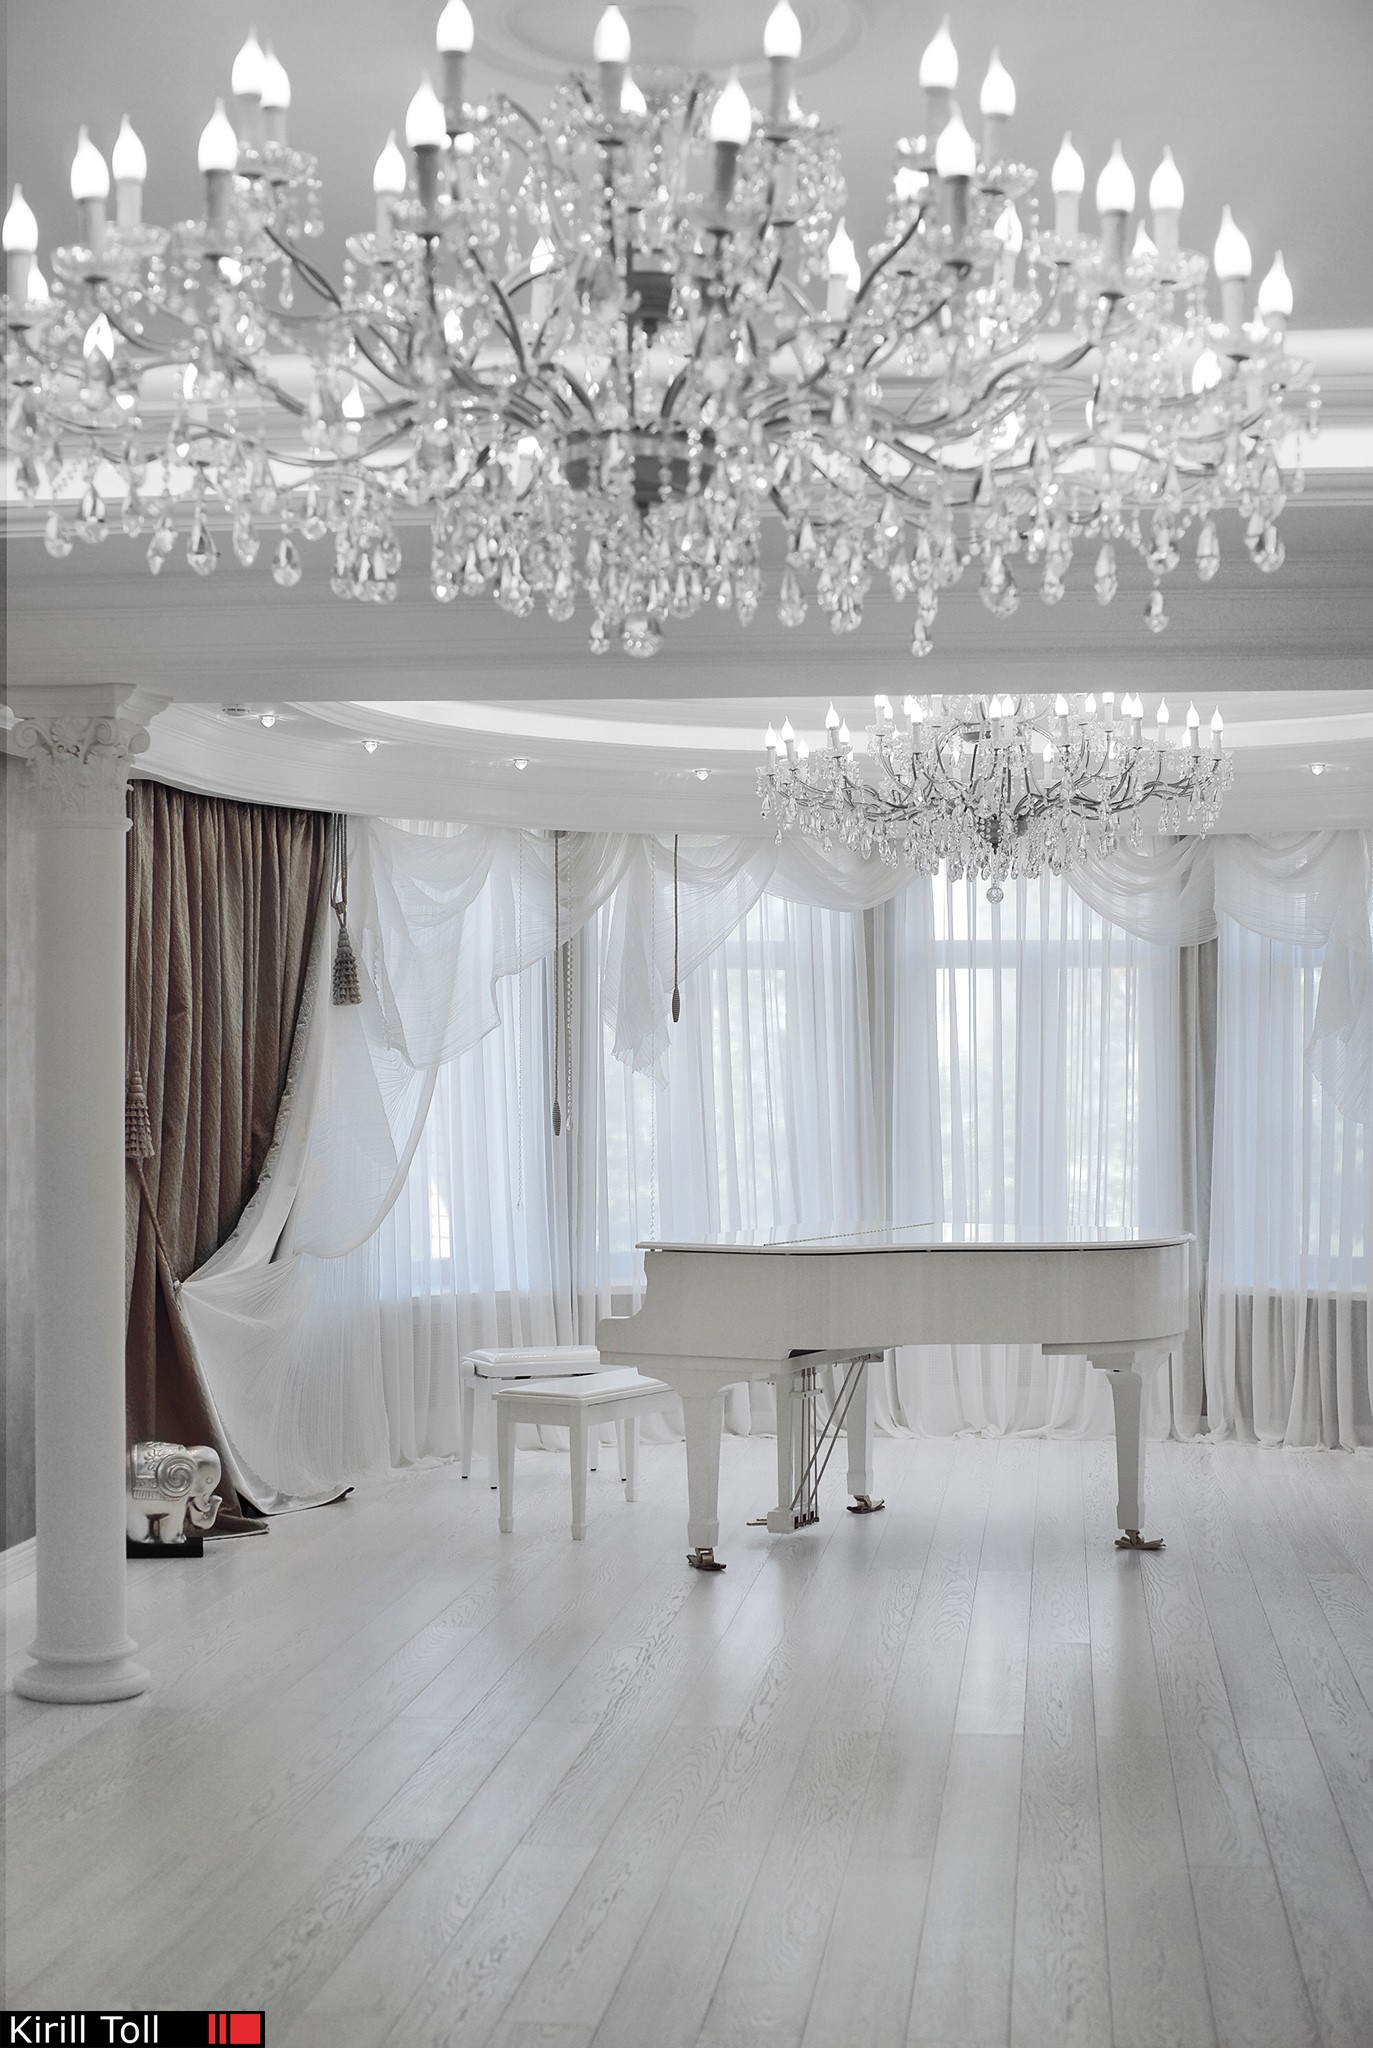 interior photography of a large house with a grand piano